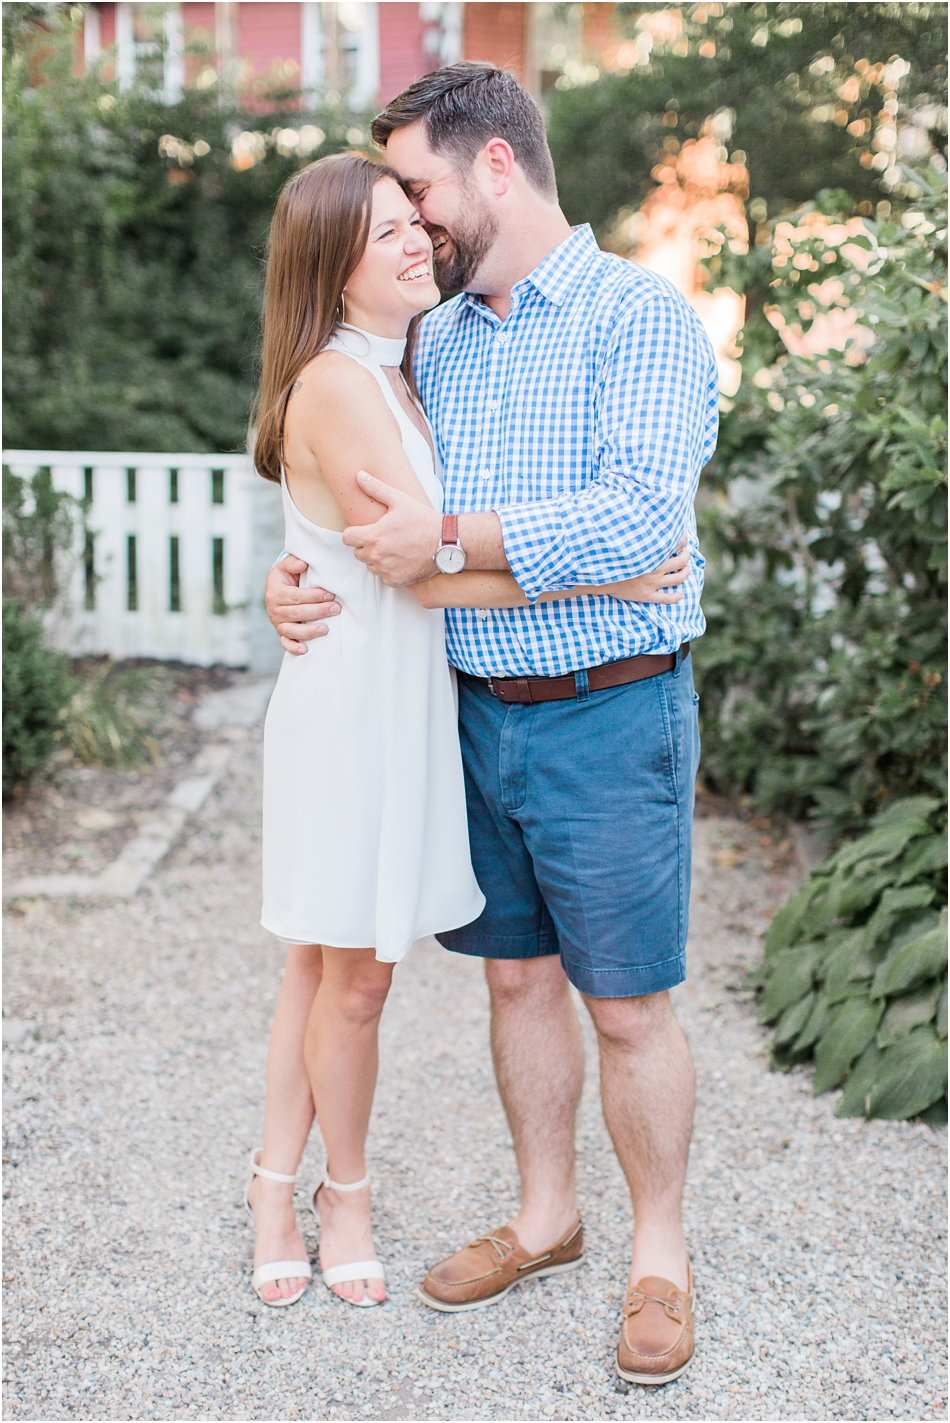 cohasset_beach_harbor_engagement_massachusetts_cape_cod_new_england_wedding_photographer_Meredith_Jane_Photography_photo_2137.jpg